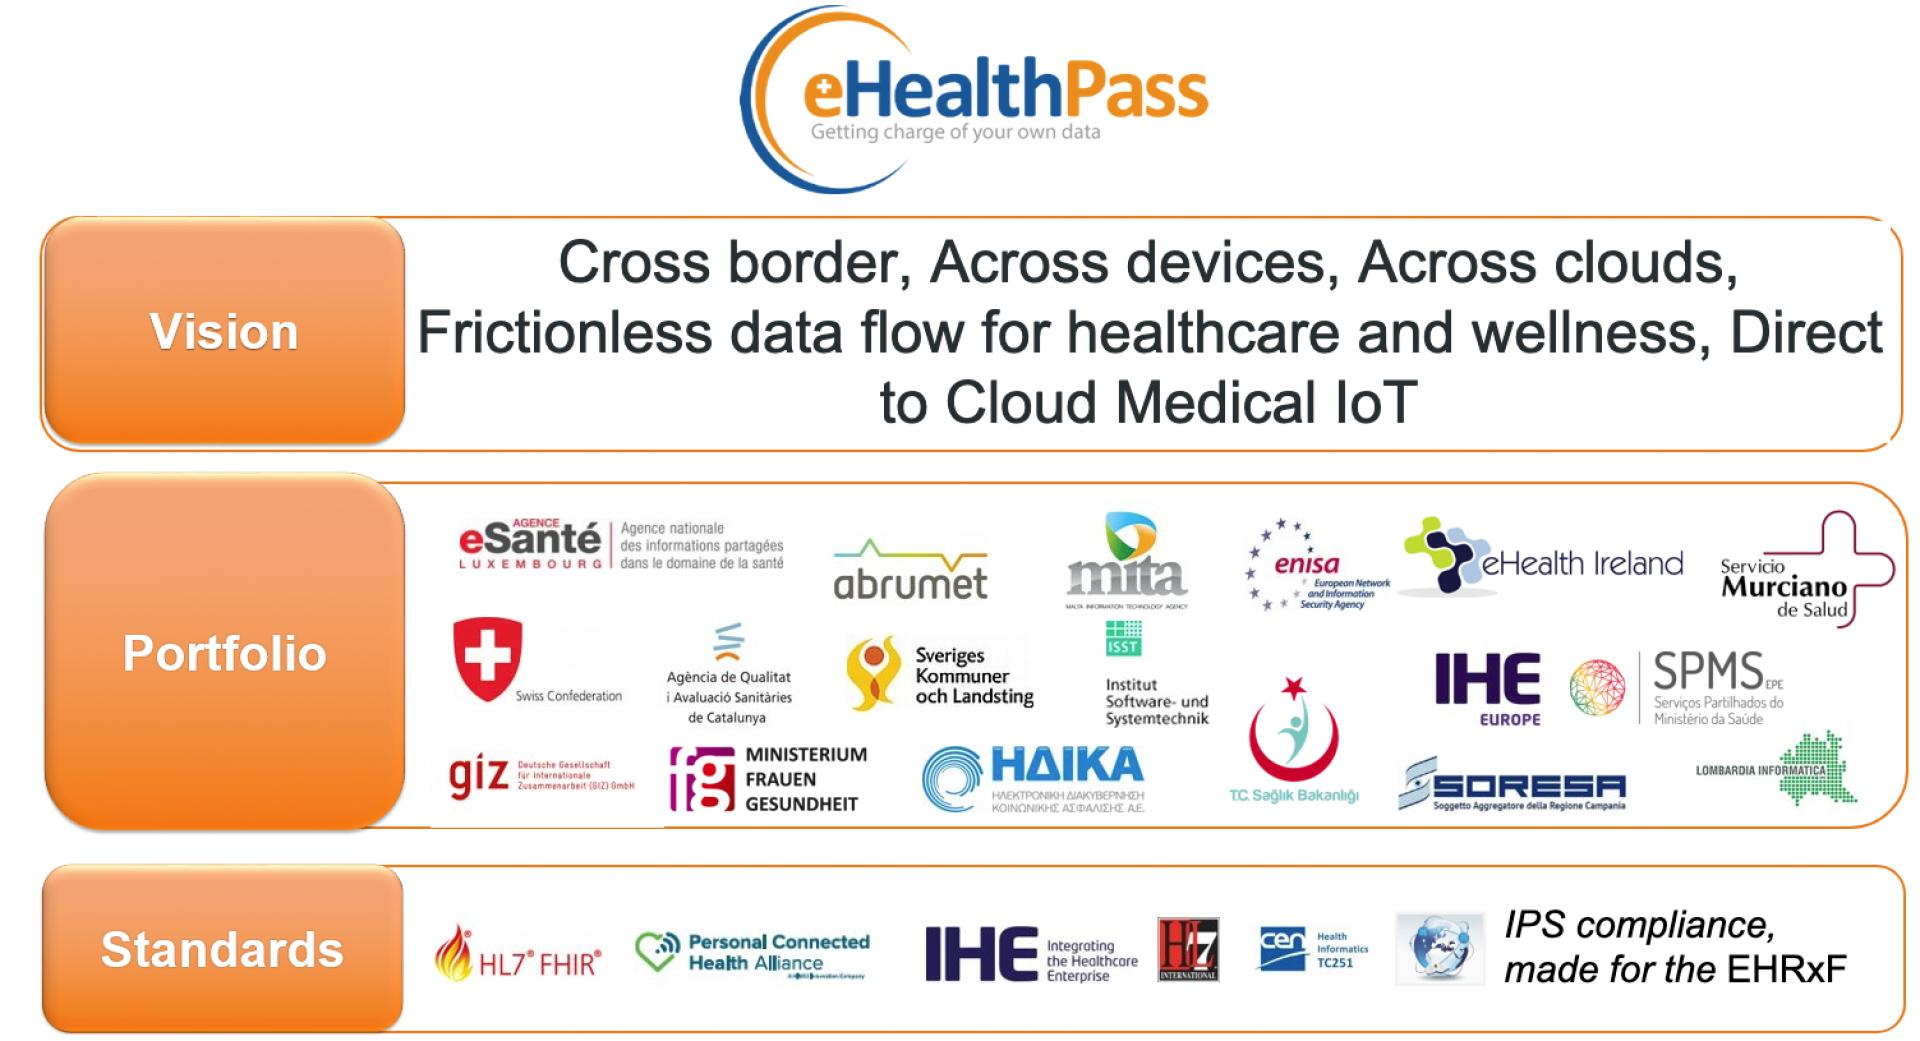 eHealthPass vision and portfolio